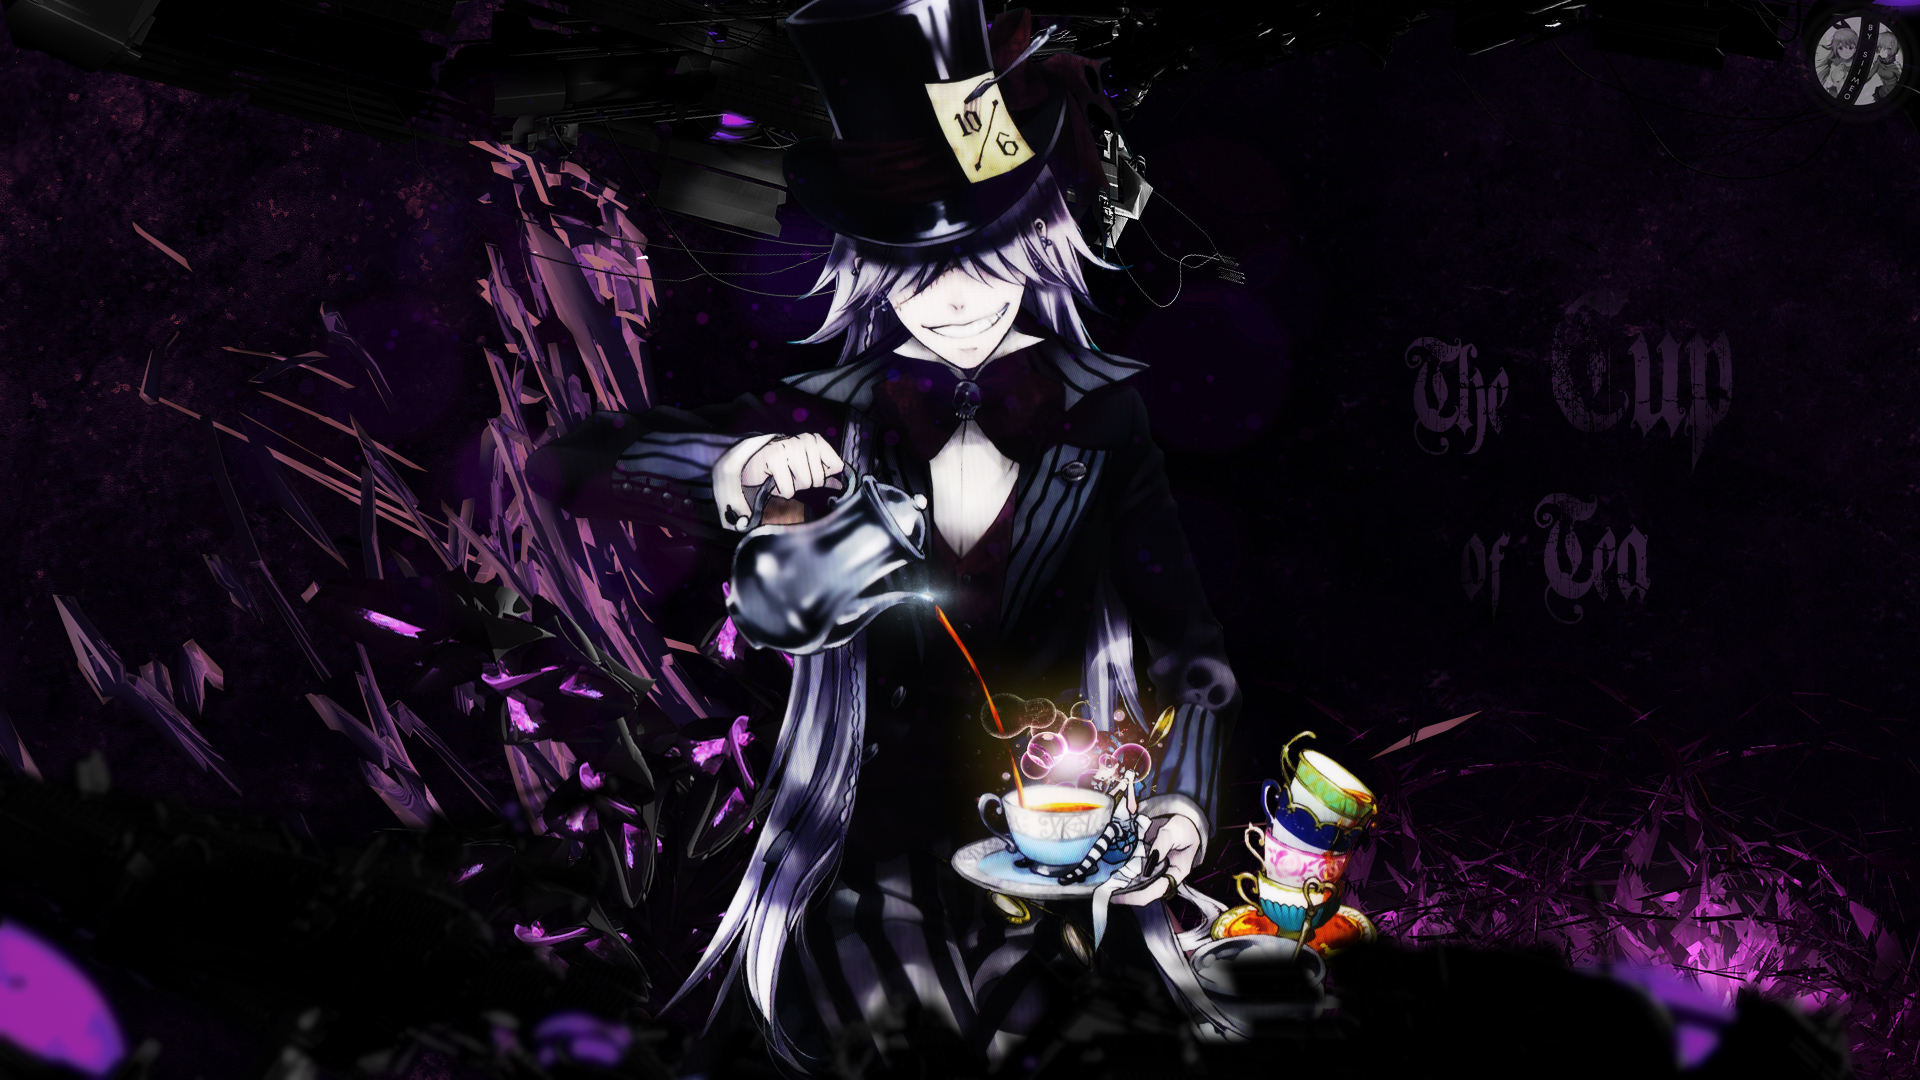 The cup of tea - Black Butler Wallpaper by Siimeo on ...  The cup of tea ...